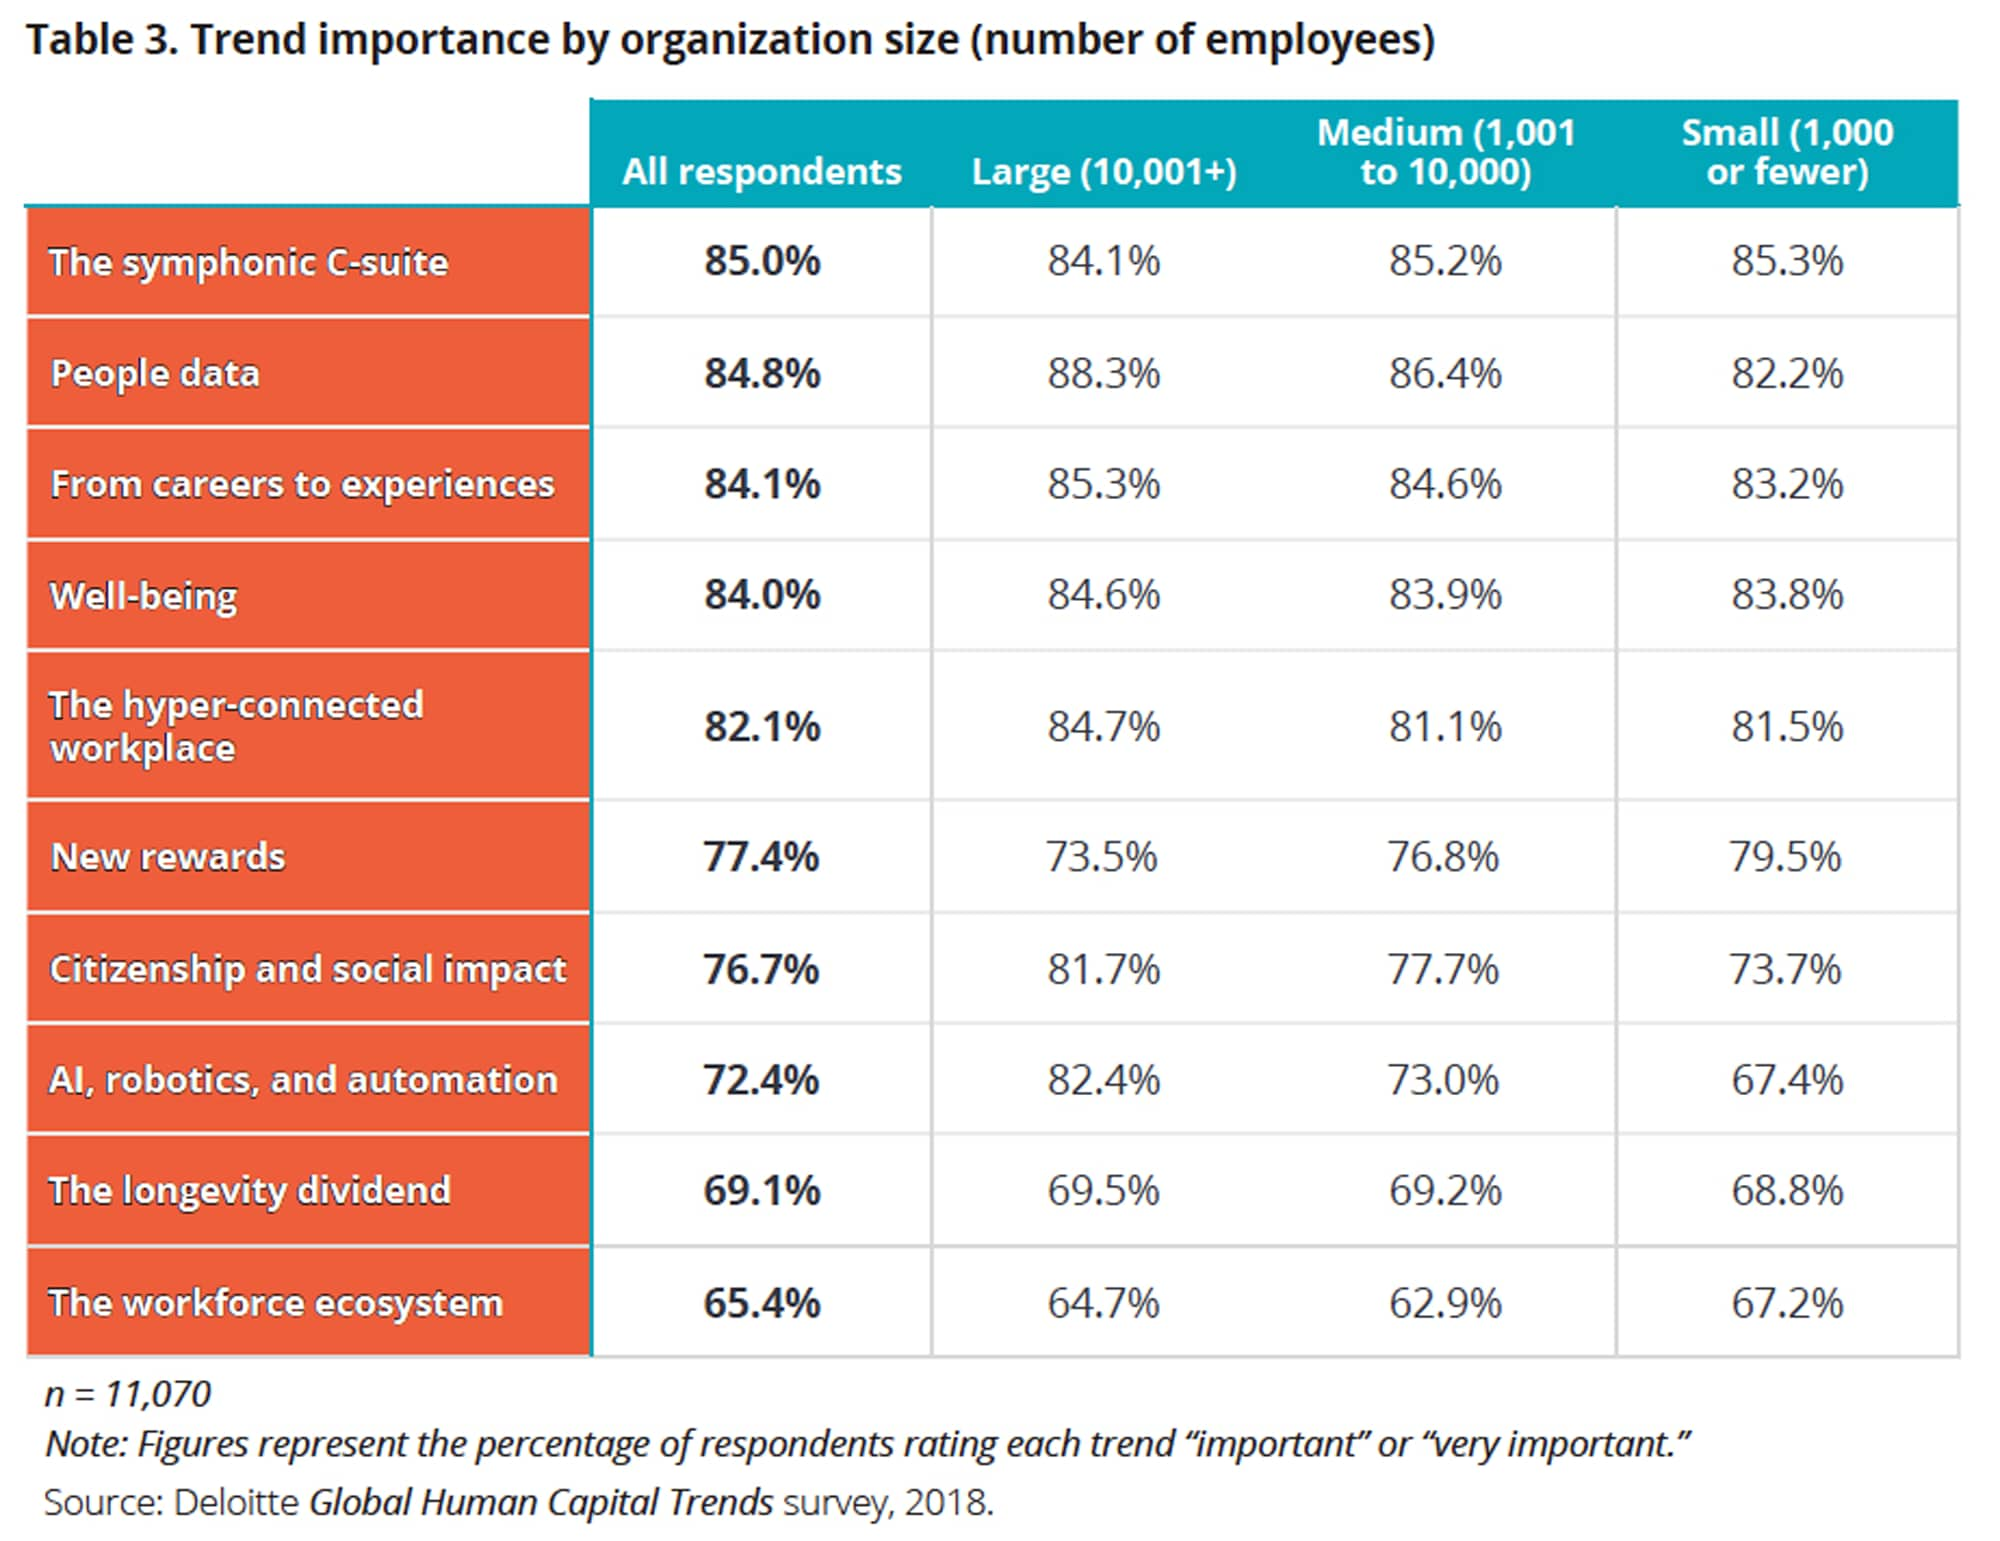 Trend importance by organization size (number of employees)